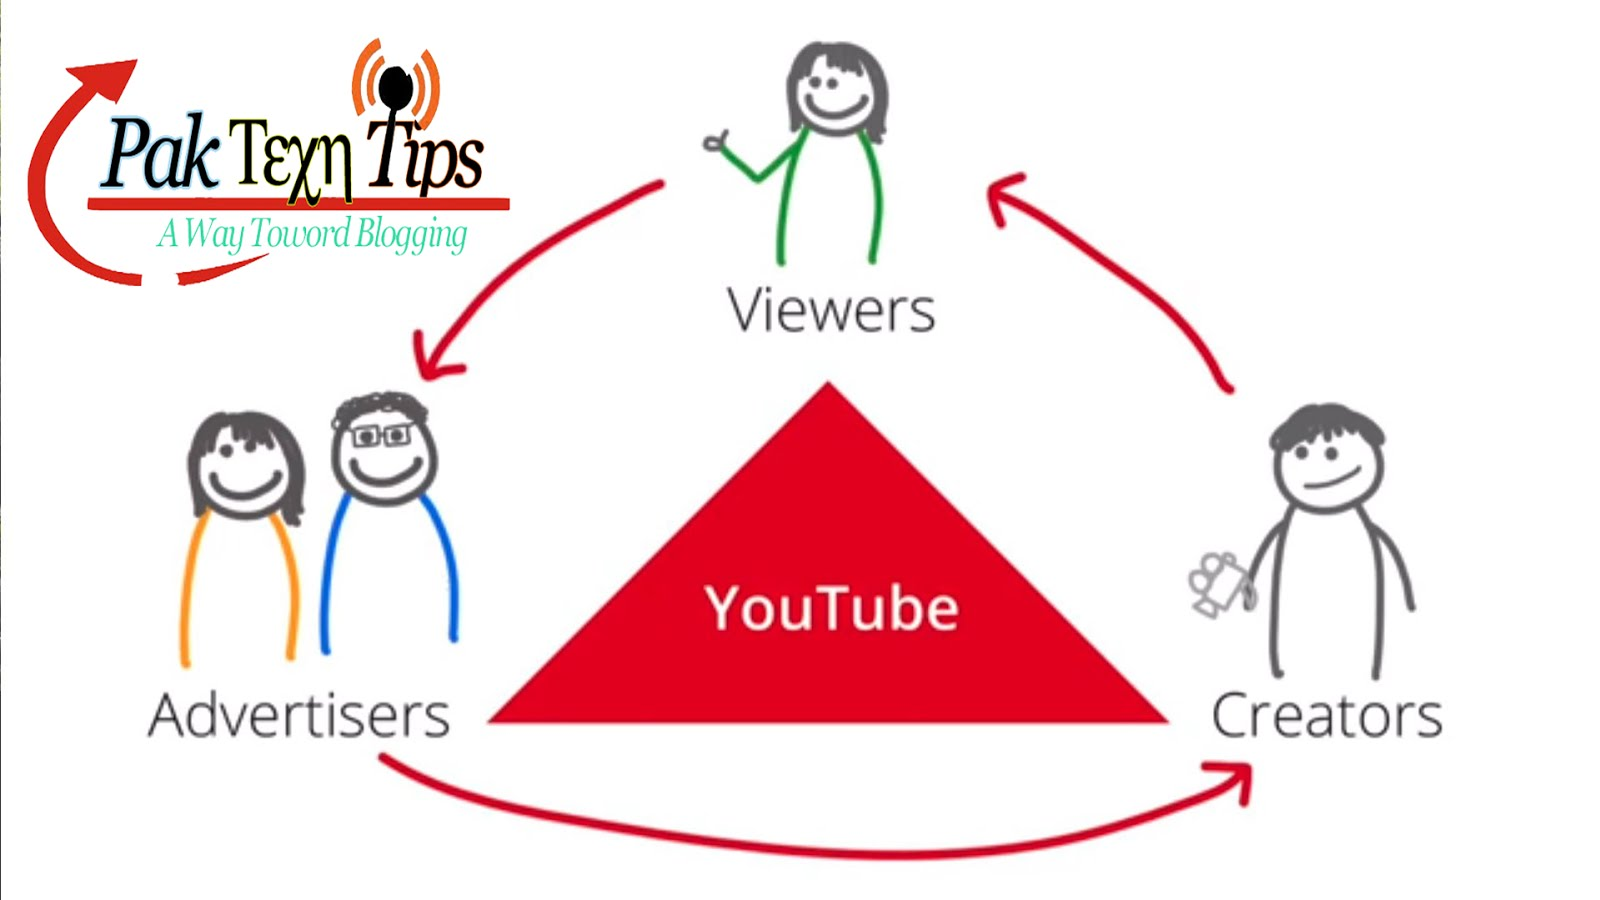 Make Money With Youtube You Can Earn Online In Pakistan With The Help Of  Youtube But Now A Days Youtube Patnership Program Is Not Allowed In  Pakistan But